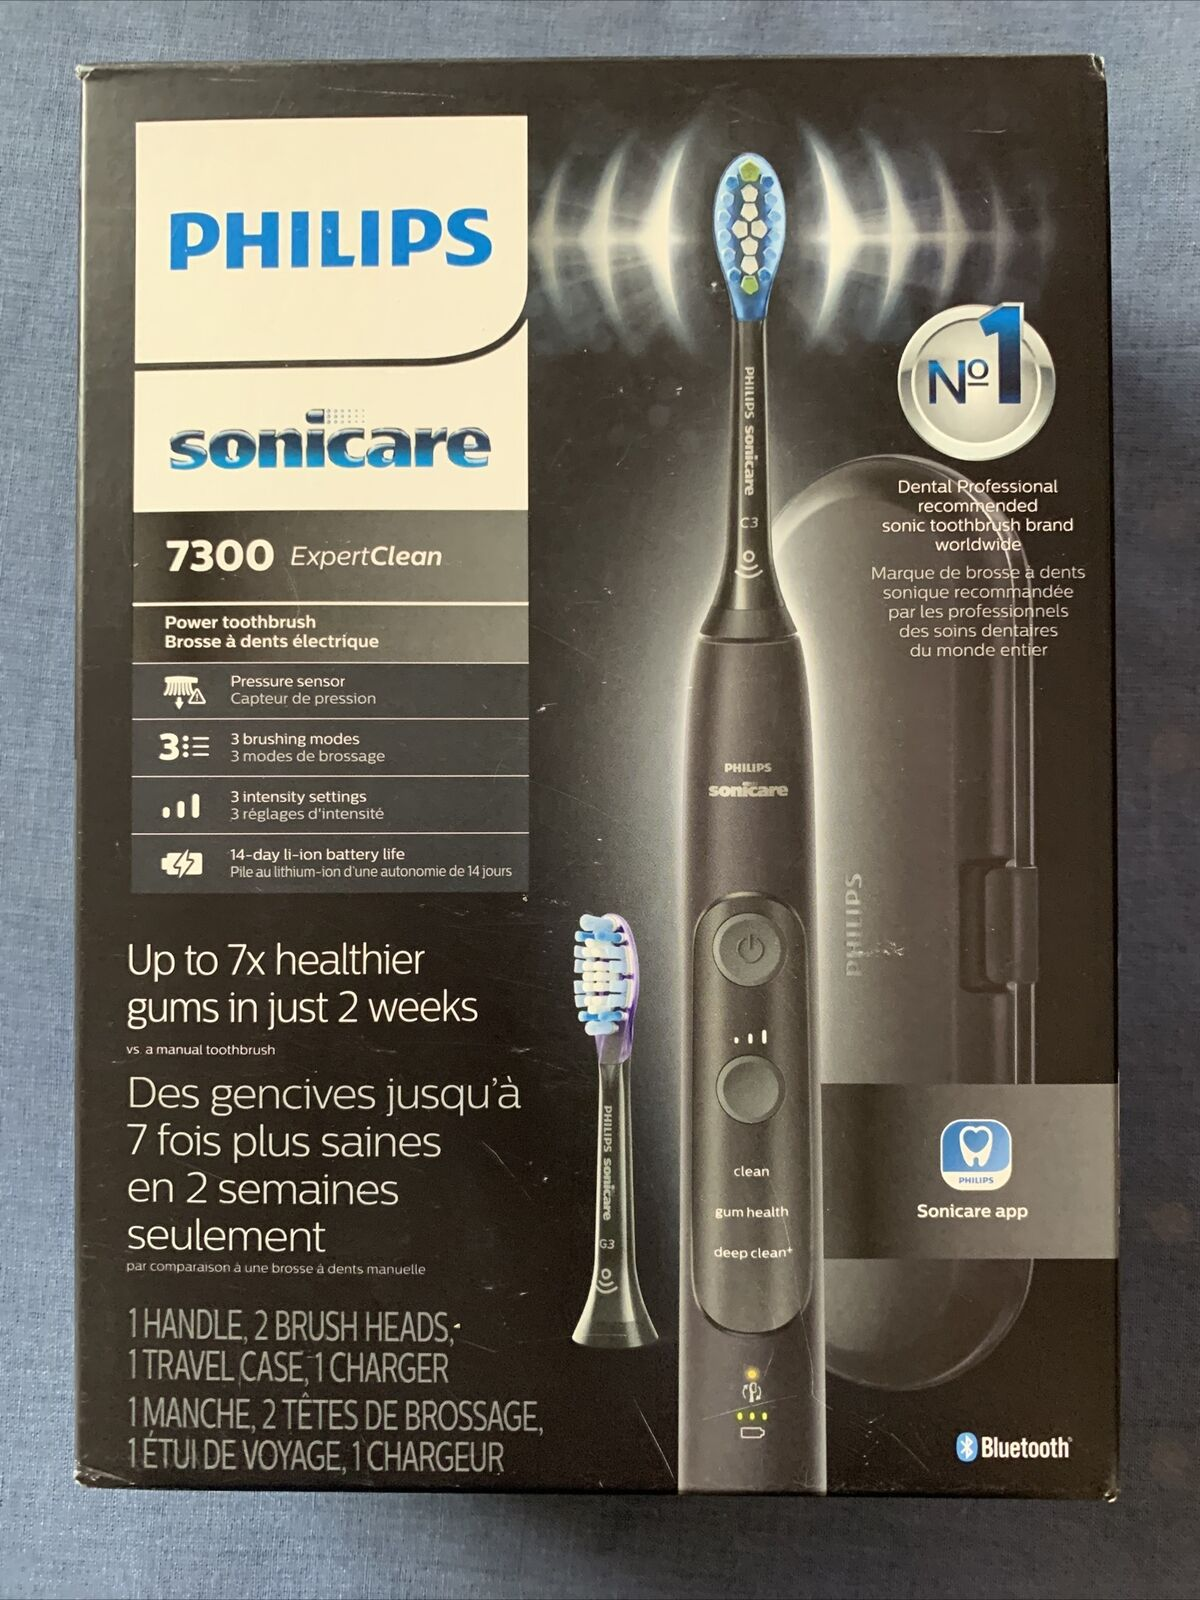 [NEW] Philips HX9610/17 Sonicare 7300 Expert Clean Electric Toothbrush - Black